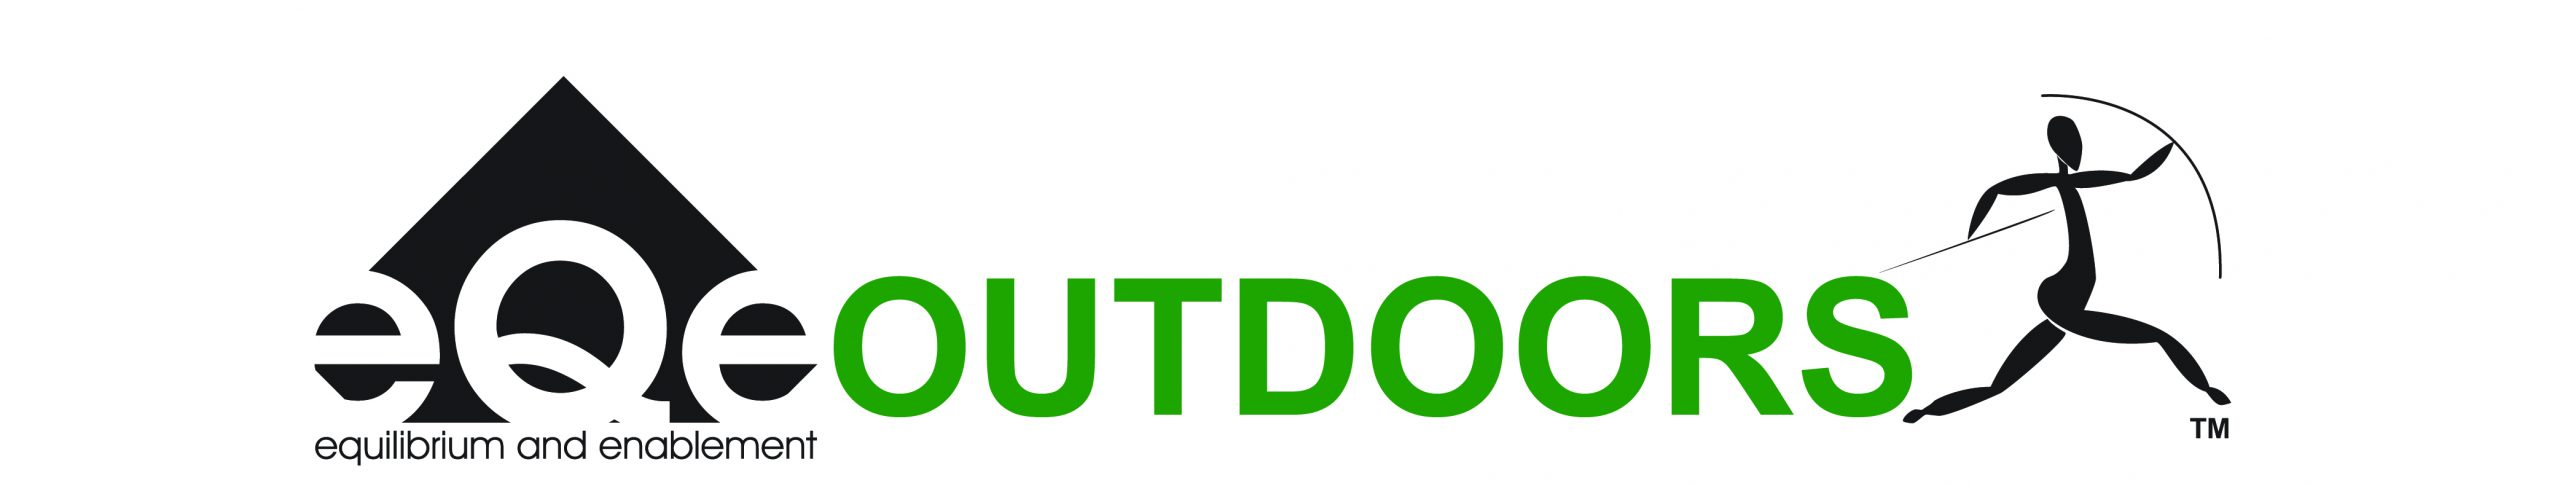 eqe outdoors